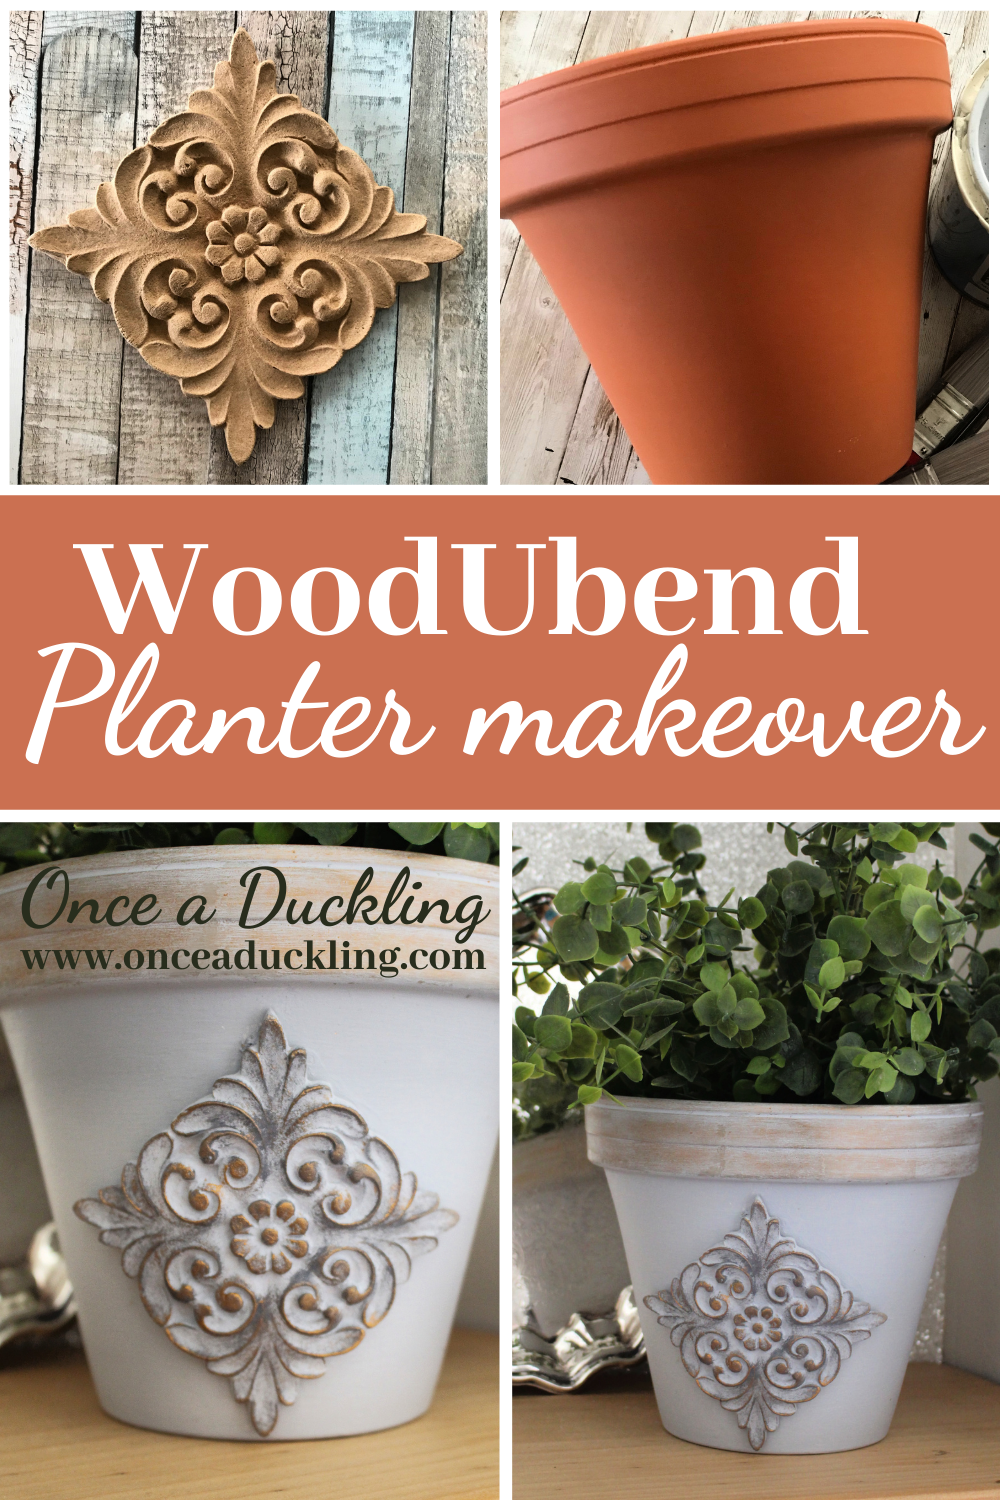 Pin for WoodUbend planter makeover before and after